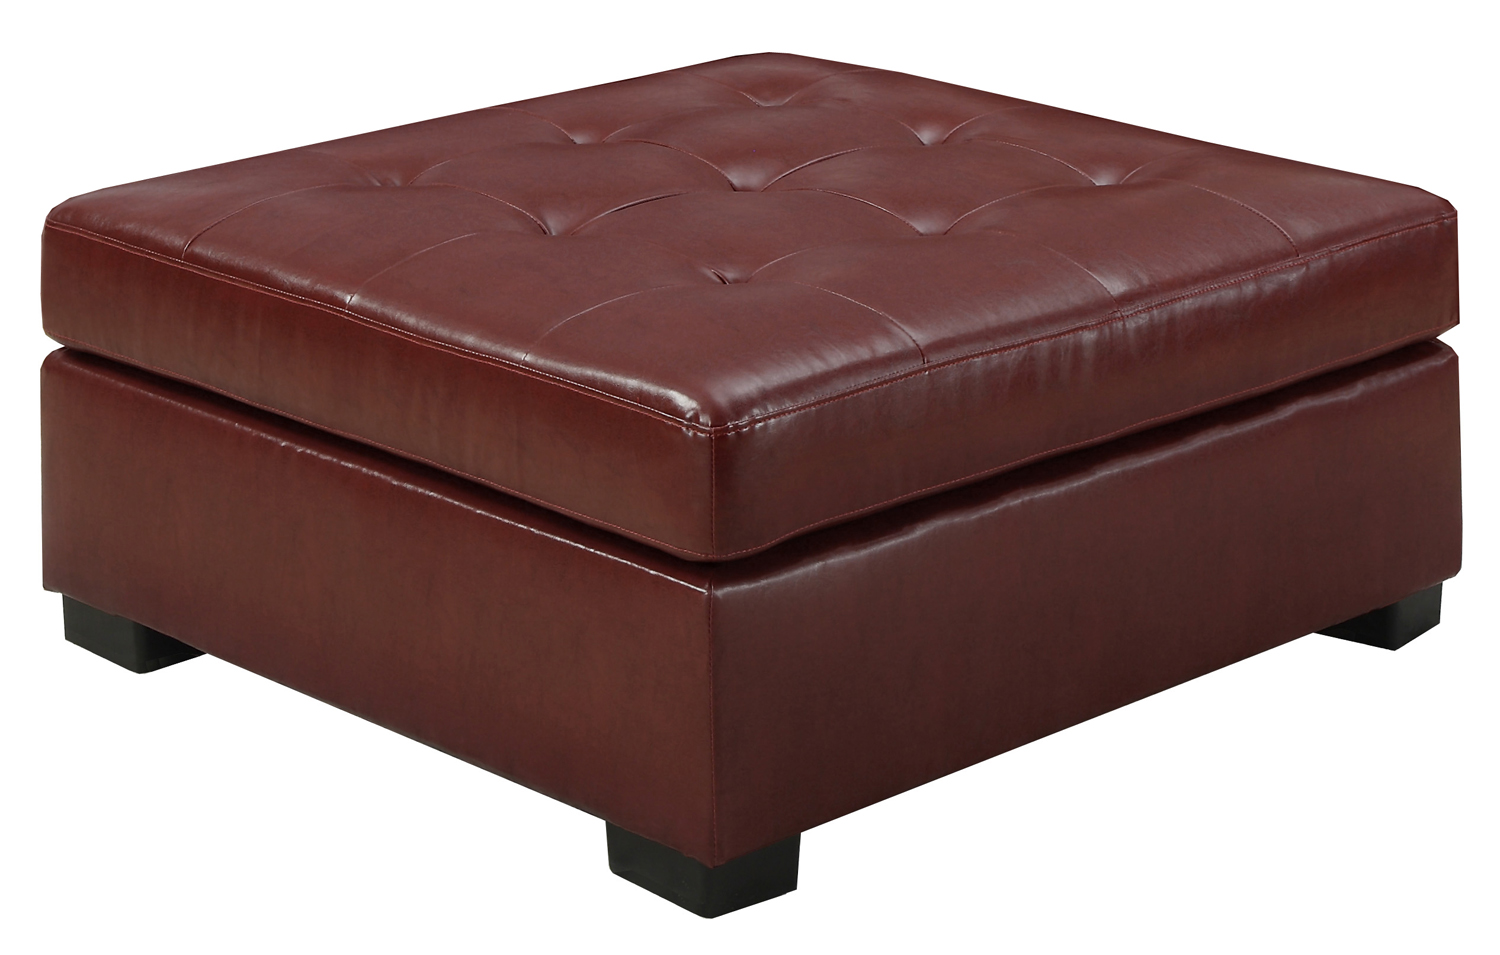 Ottoman - Red Bonded Leather / Match